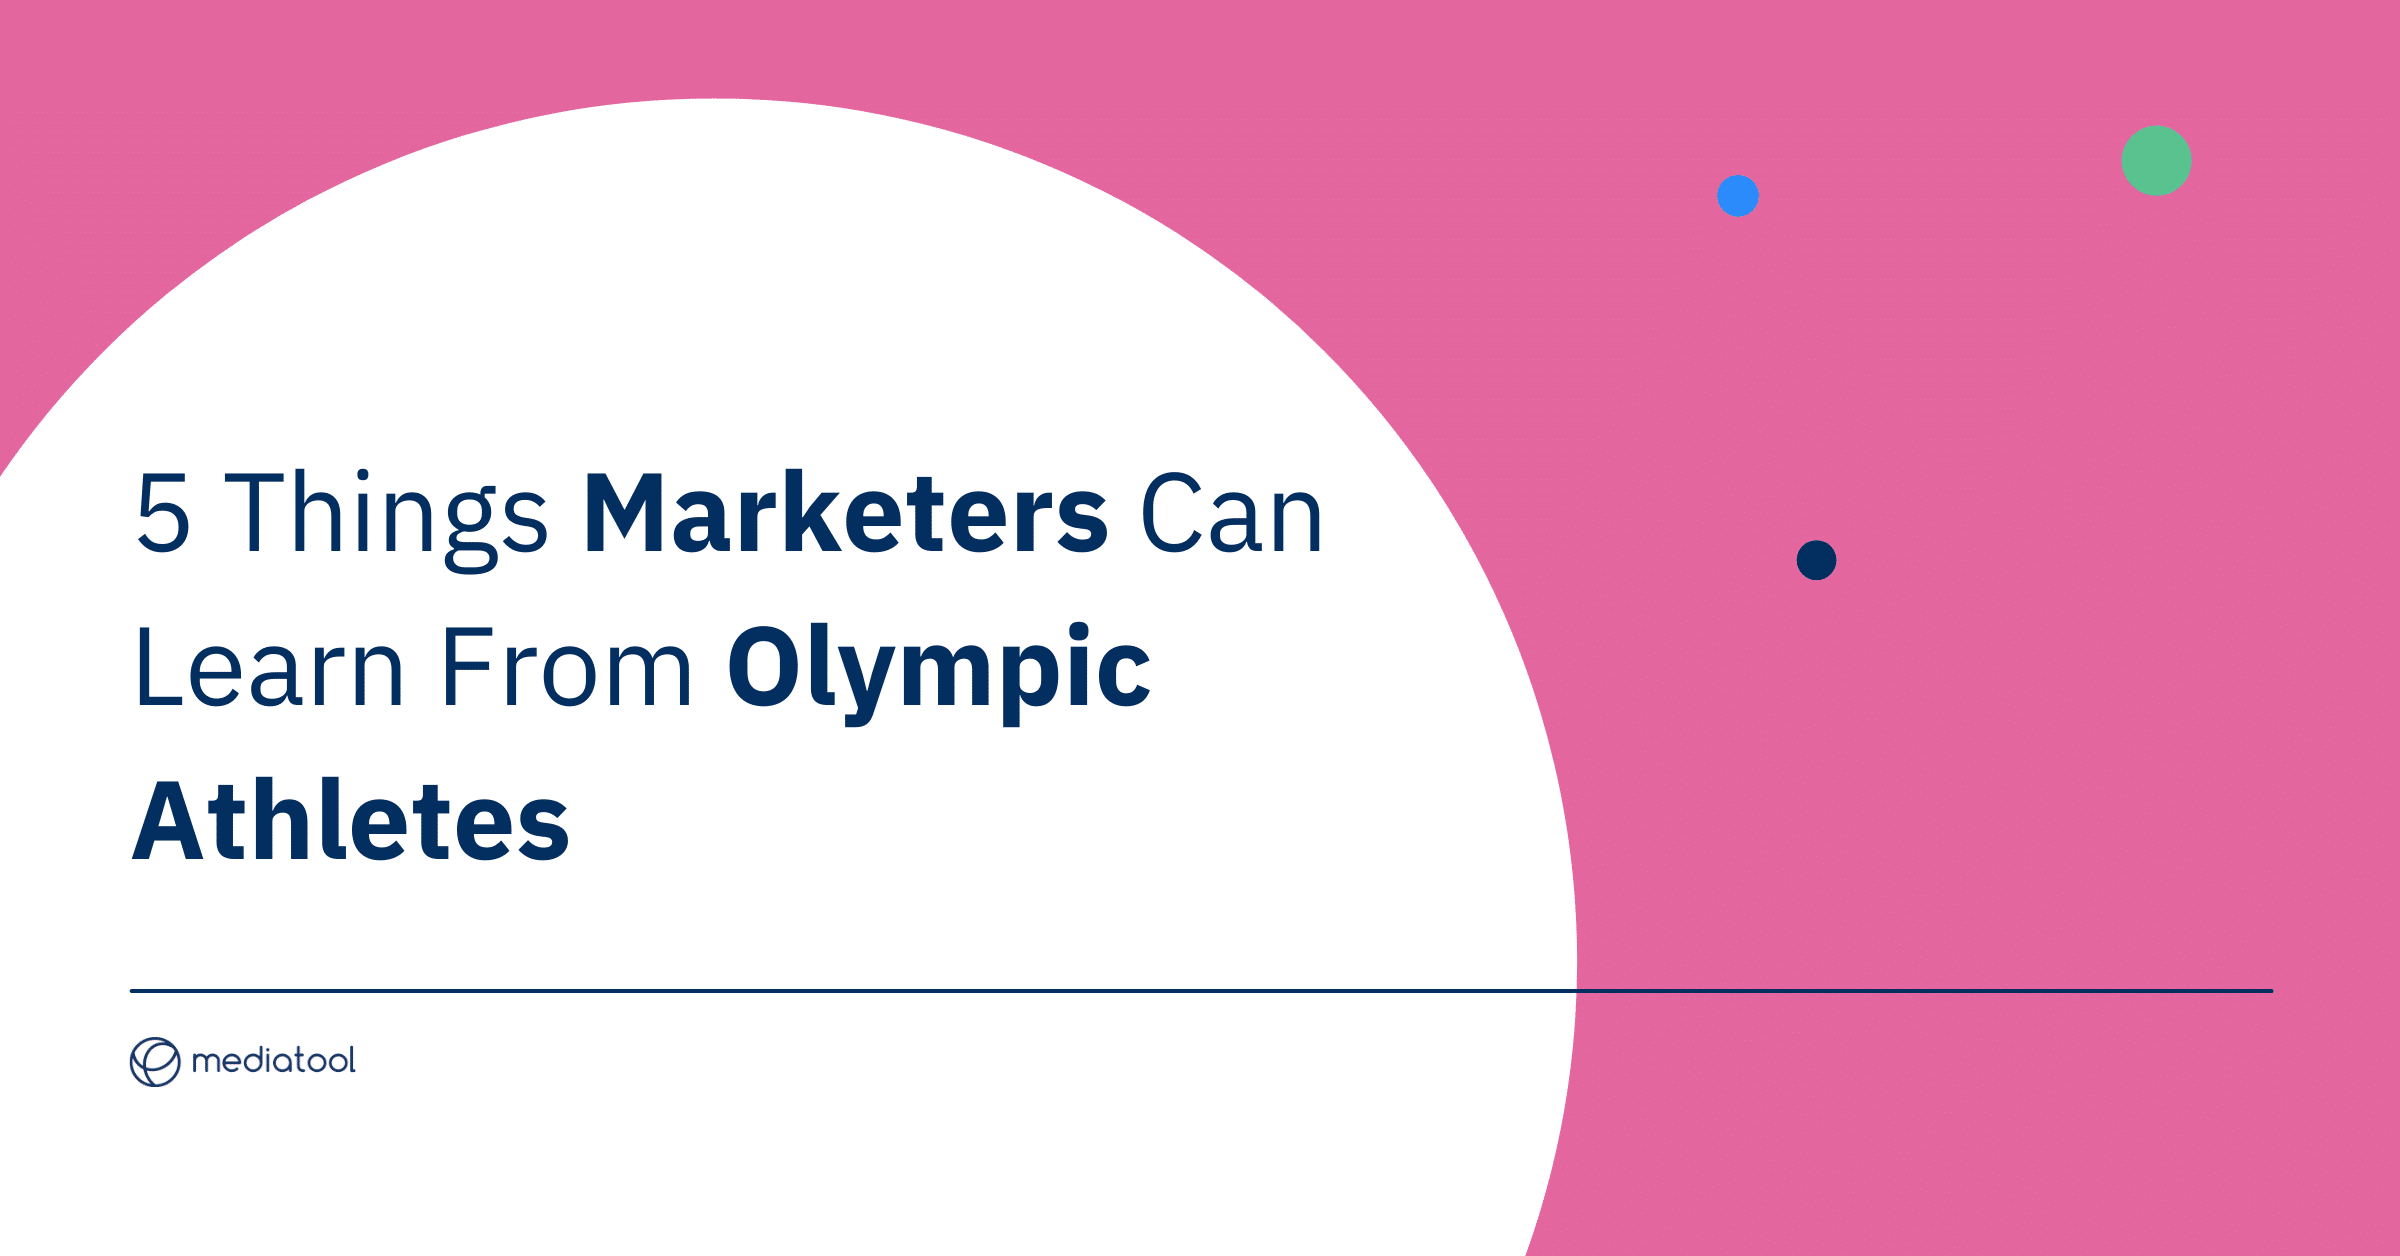 5 Things Marketers Can Learn From Olympic Athletes